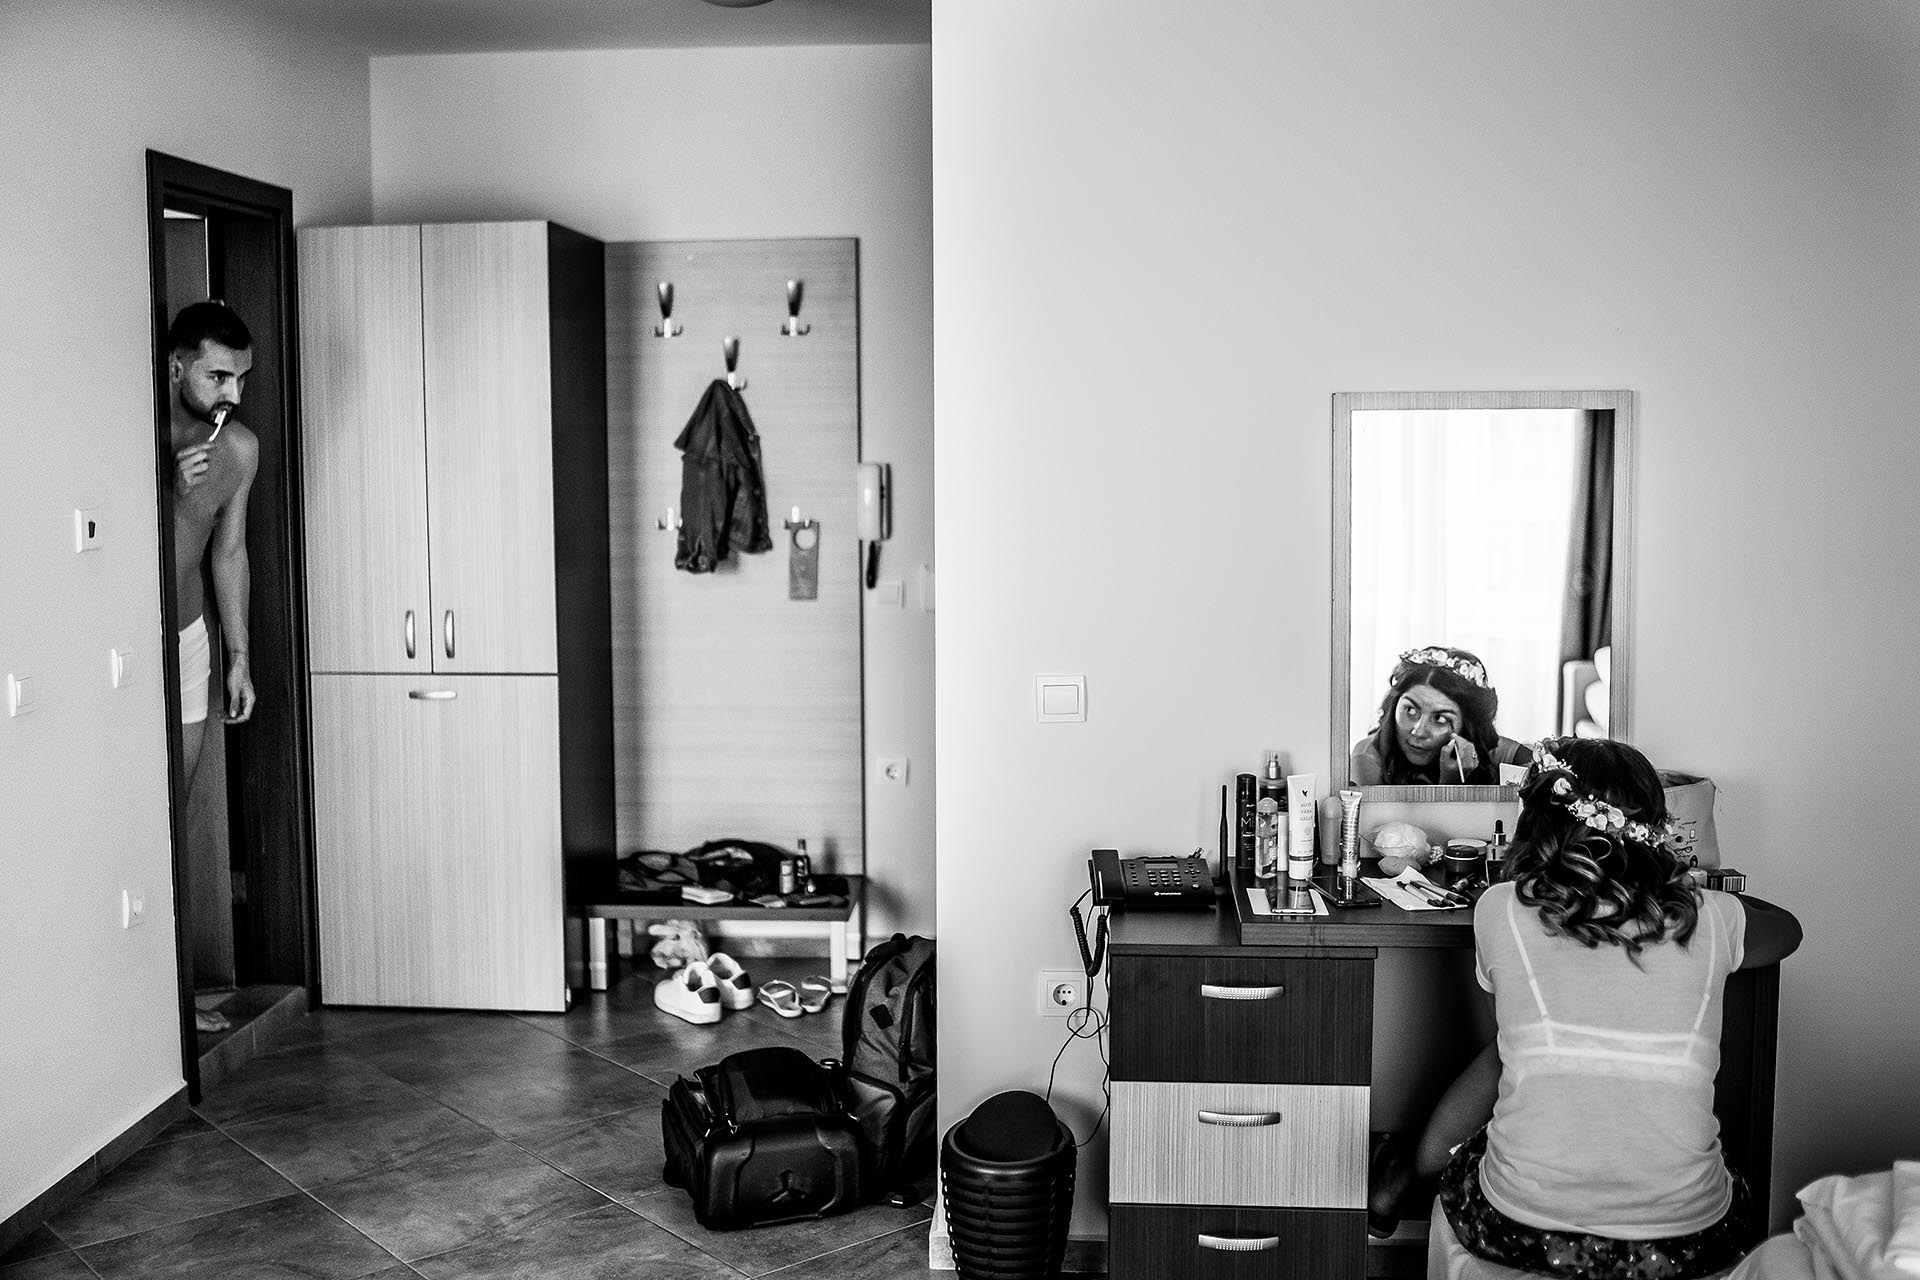 Smokinya Beach, Sozopol, Bulgaria Elopement Photographer | The groom peaks out of the bathroom while brushing his teeth